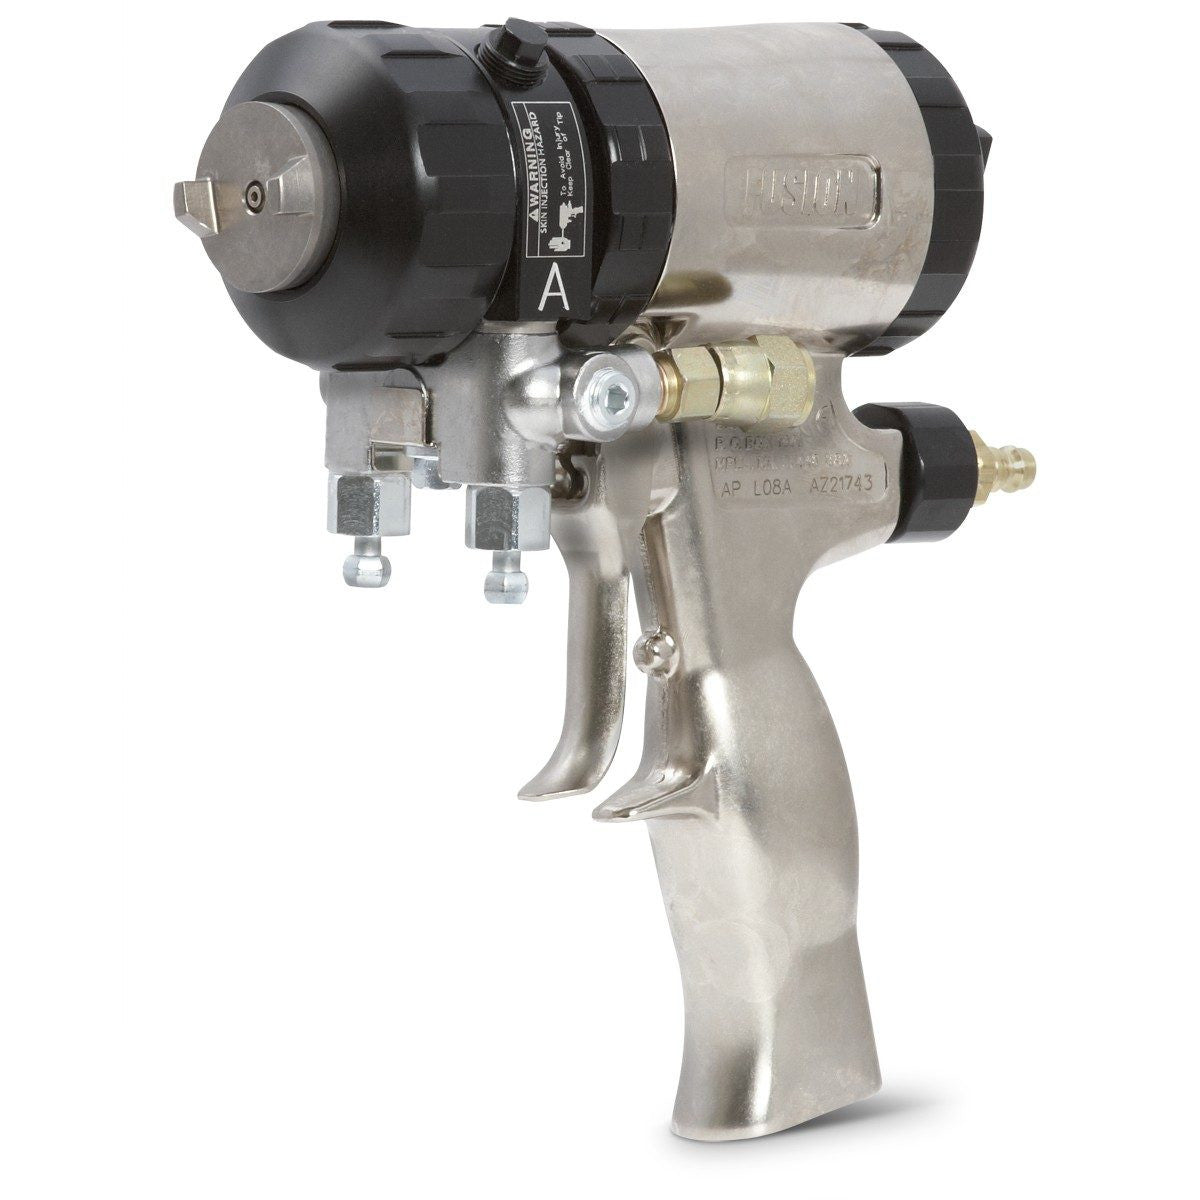 https://spray-foam-insulaion.myshopify.com/collections/spray-guns/products/graco-fusion-air-purge-spray-gun